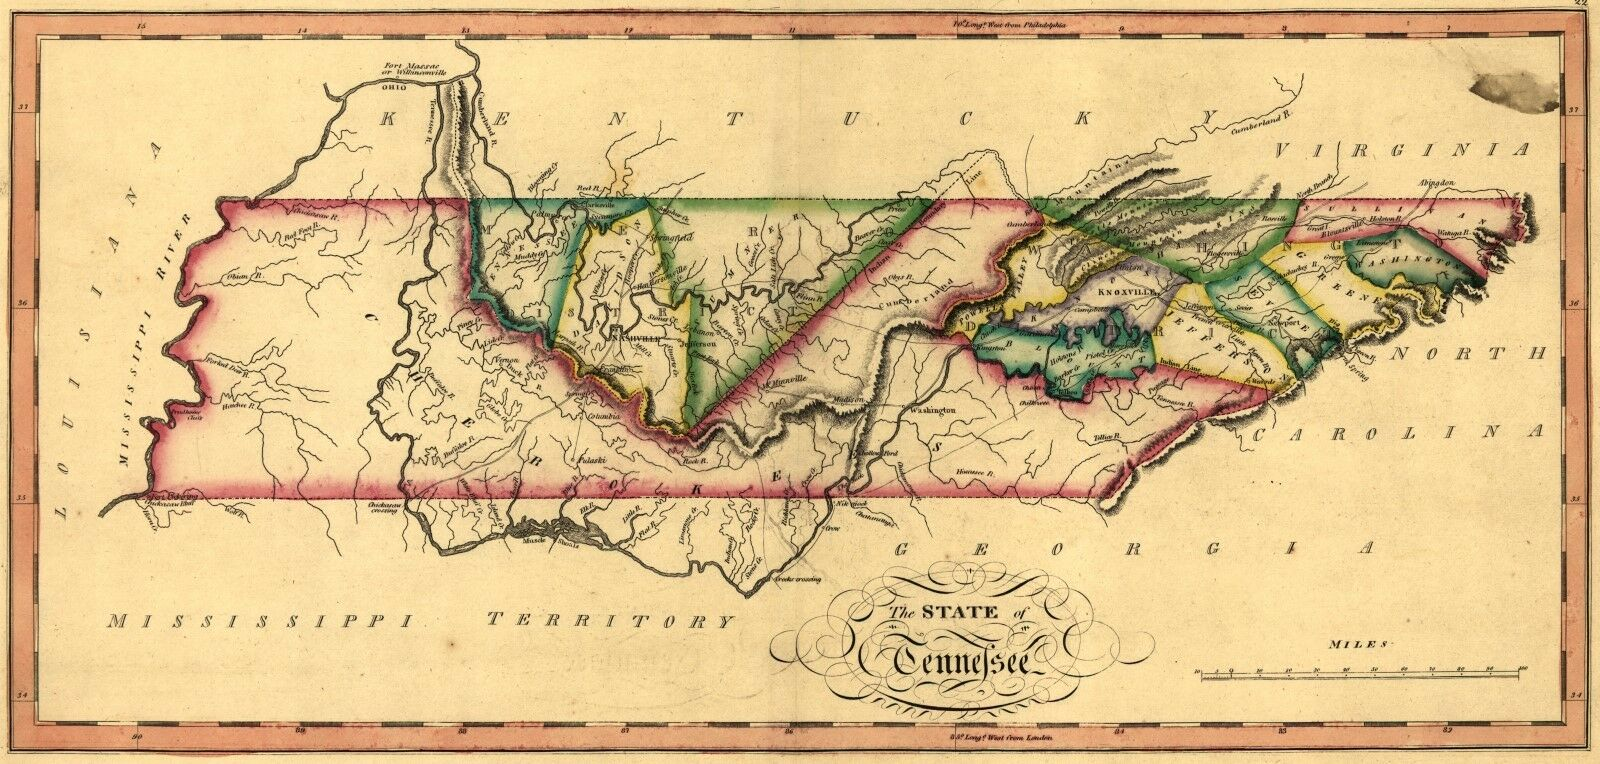 Details about A4 Reprint of American Cities Towns States Map Kentucky  Tennessee